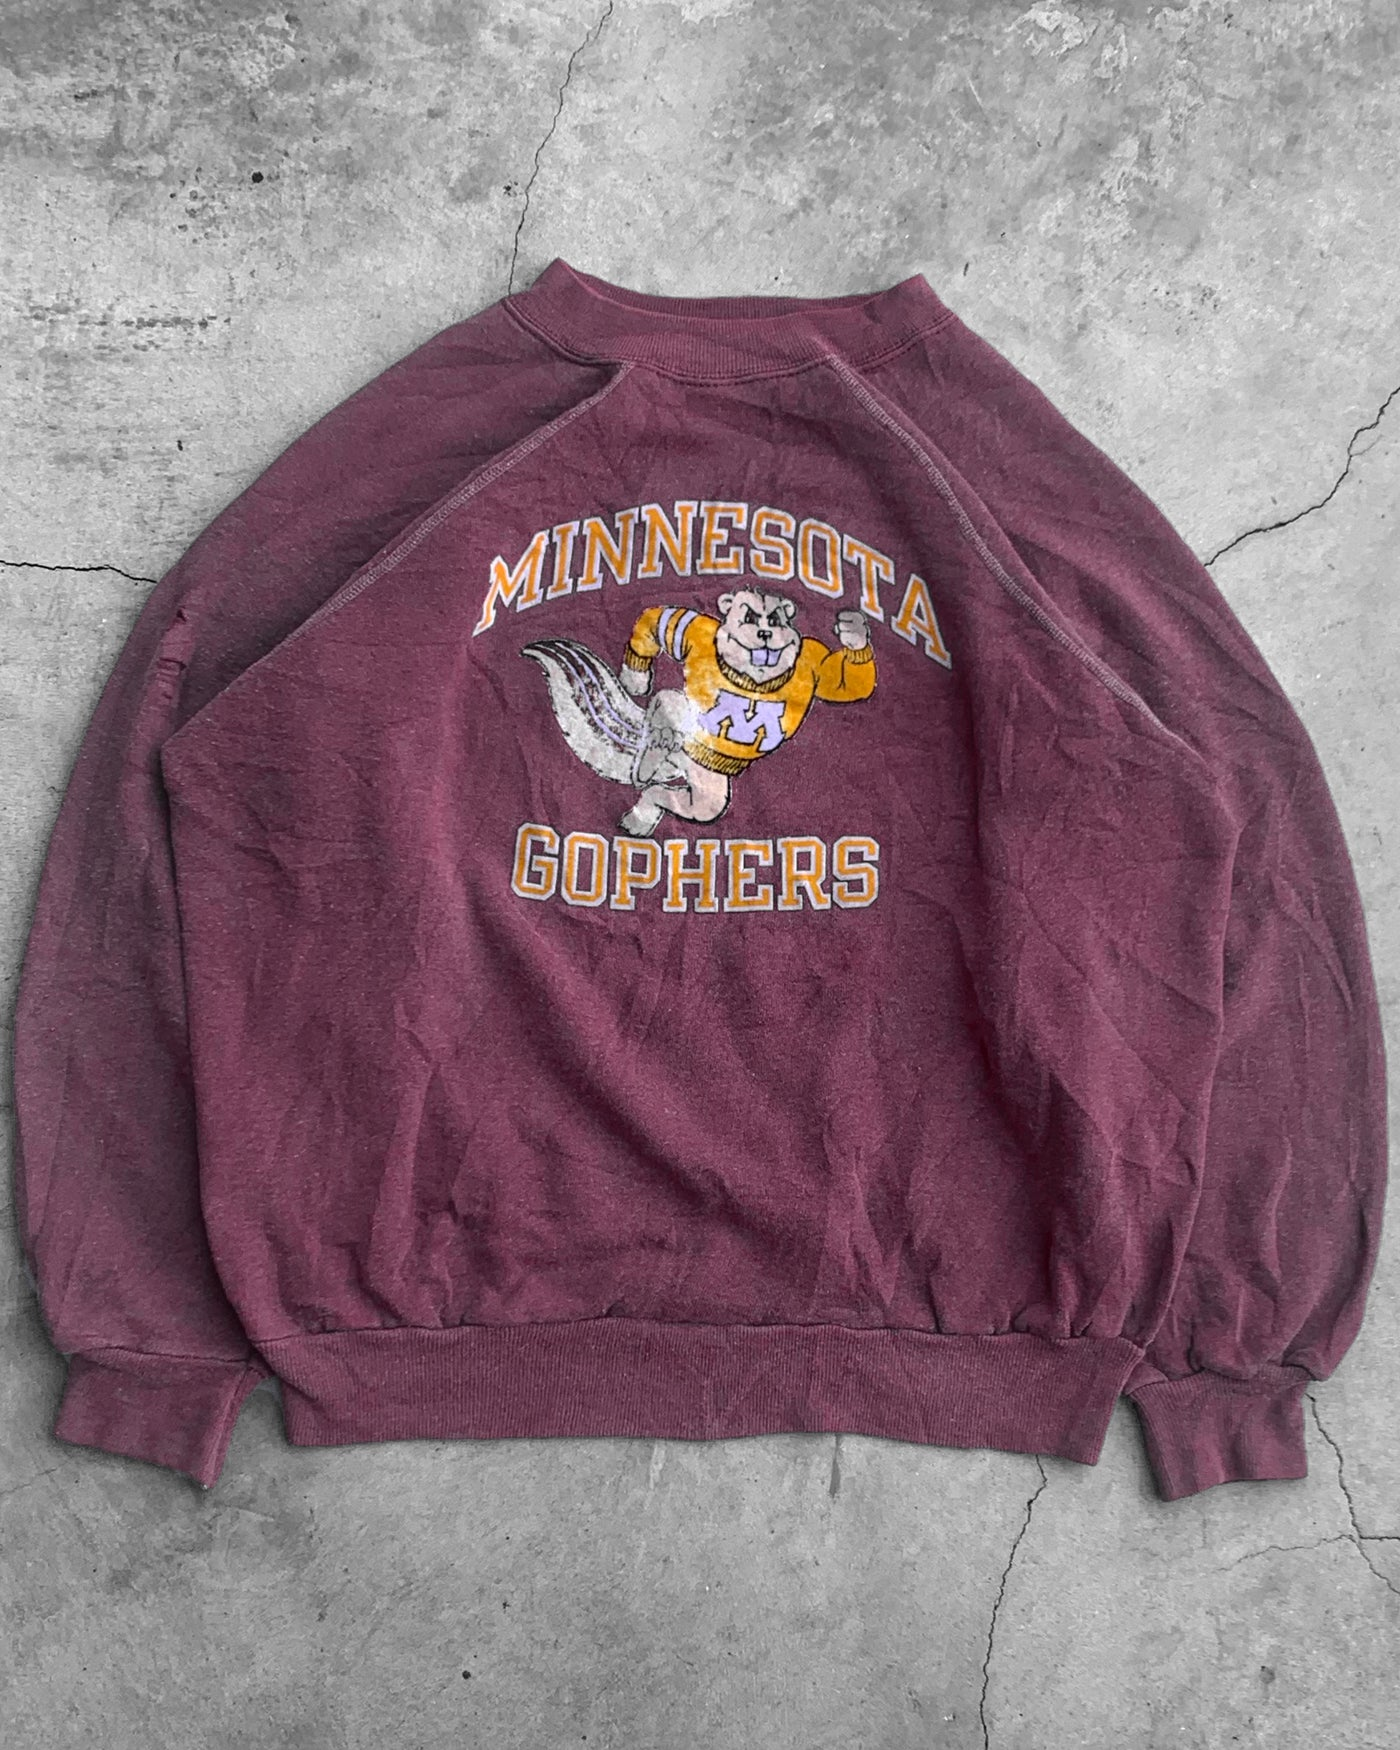 Champion Minnesota Gophers Raglan Sweatshirt - 1980s